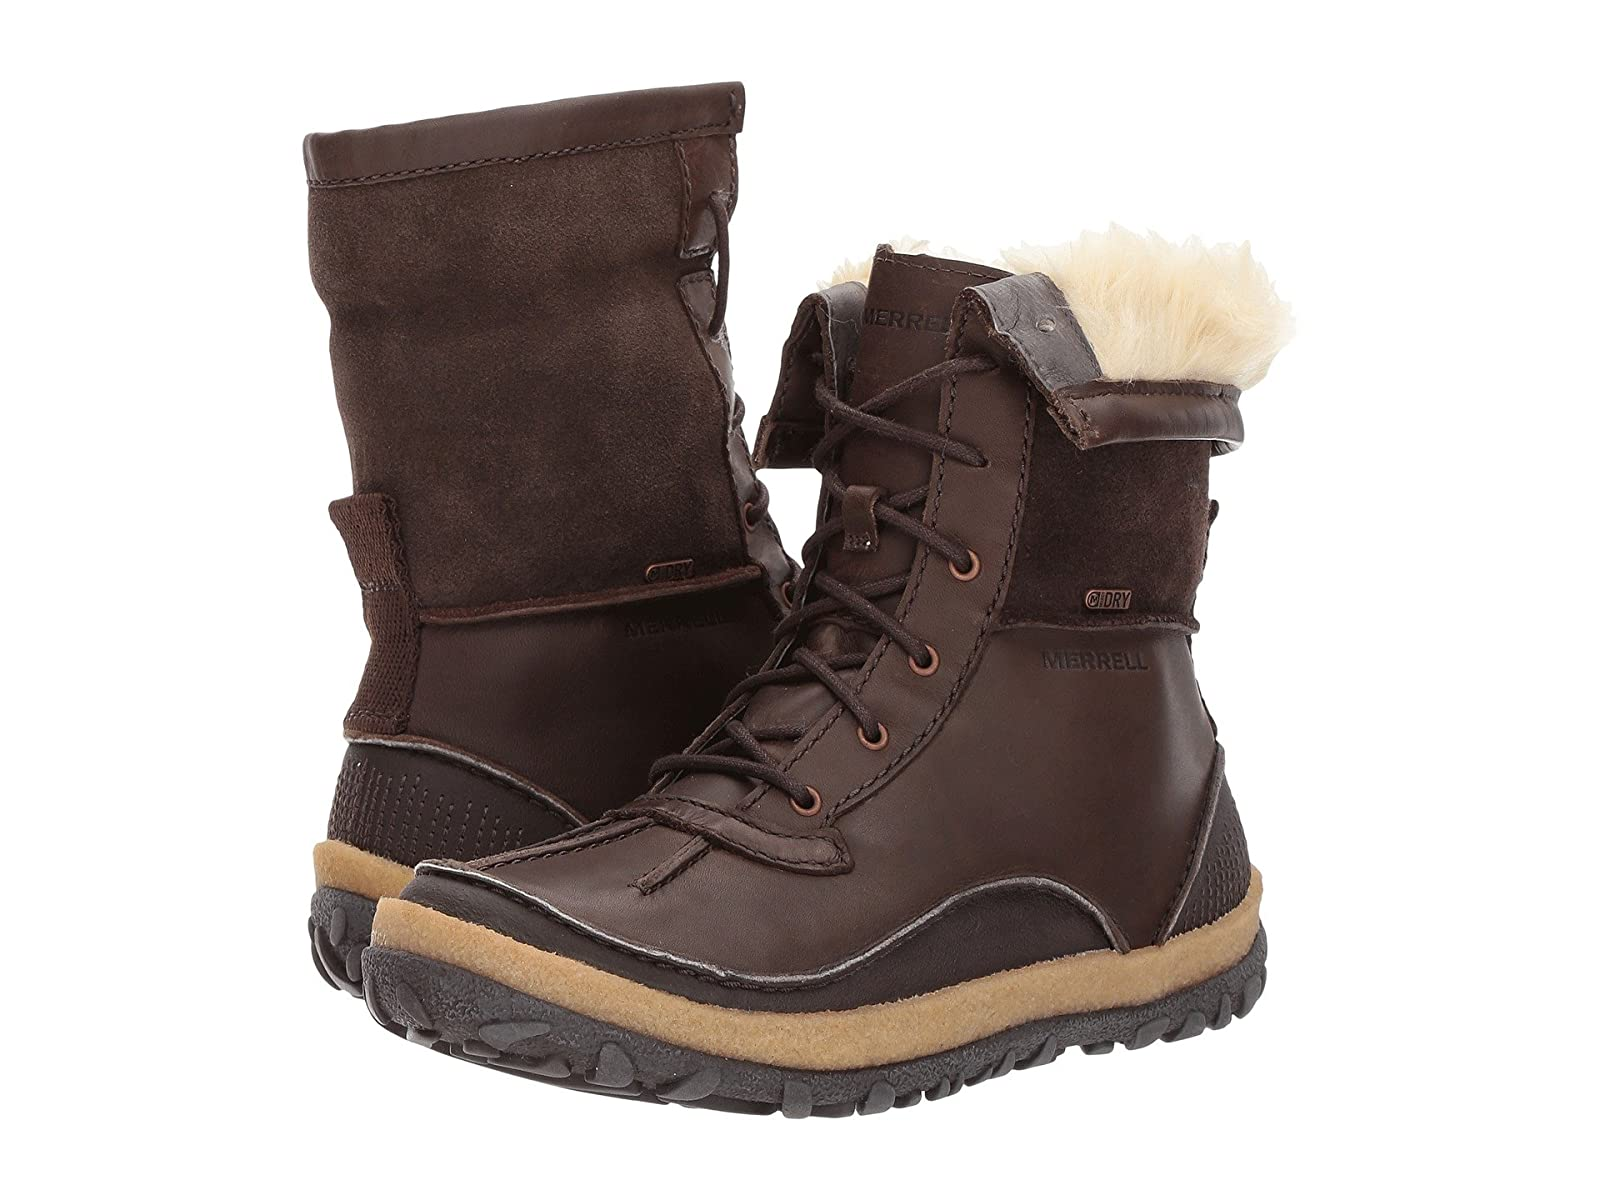 Merrell Tremblant Mid Polar WaterproofCheap and distinctive eye-catching shoes